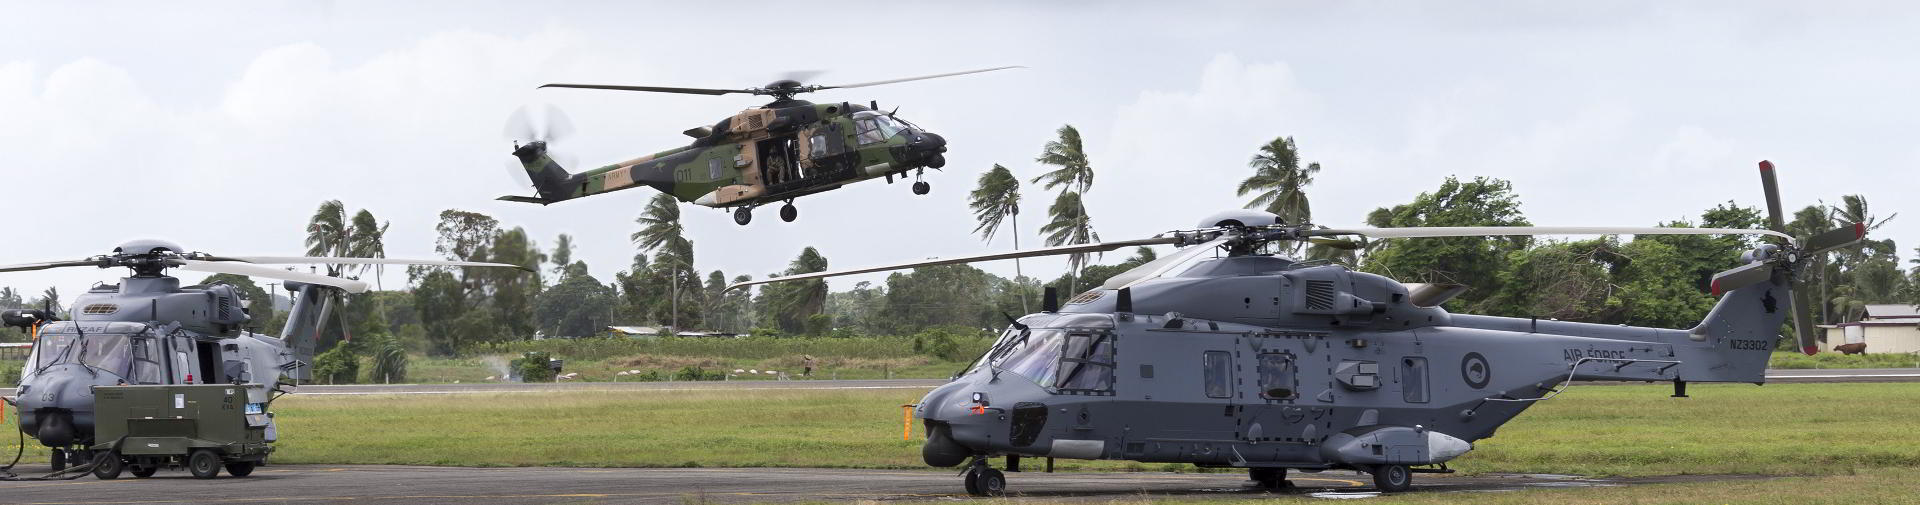 Defence helicopters